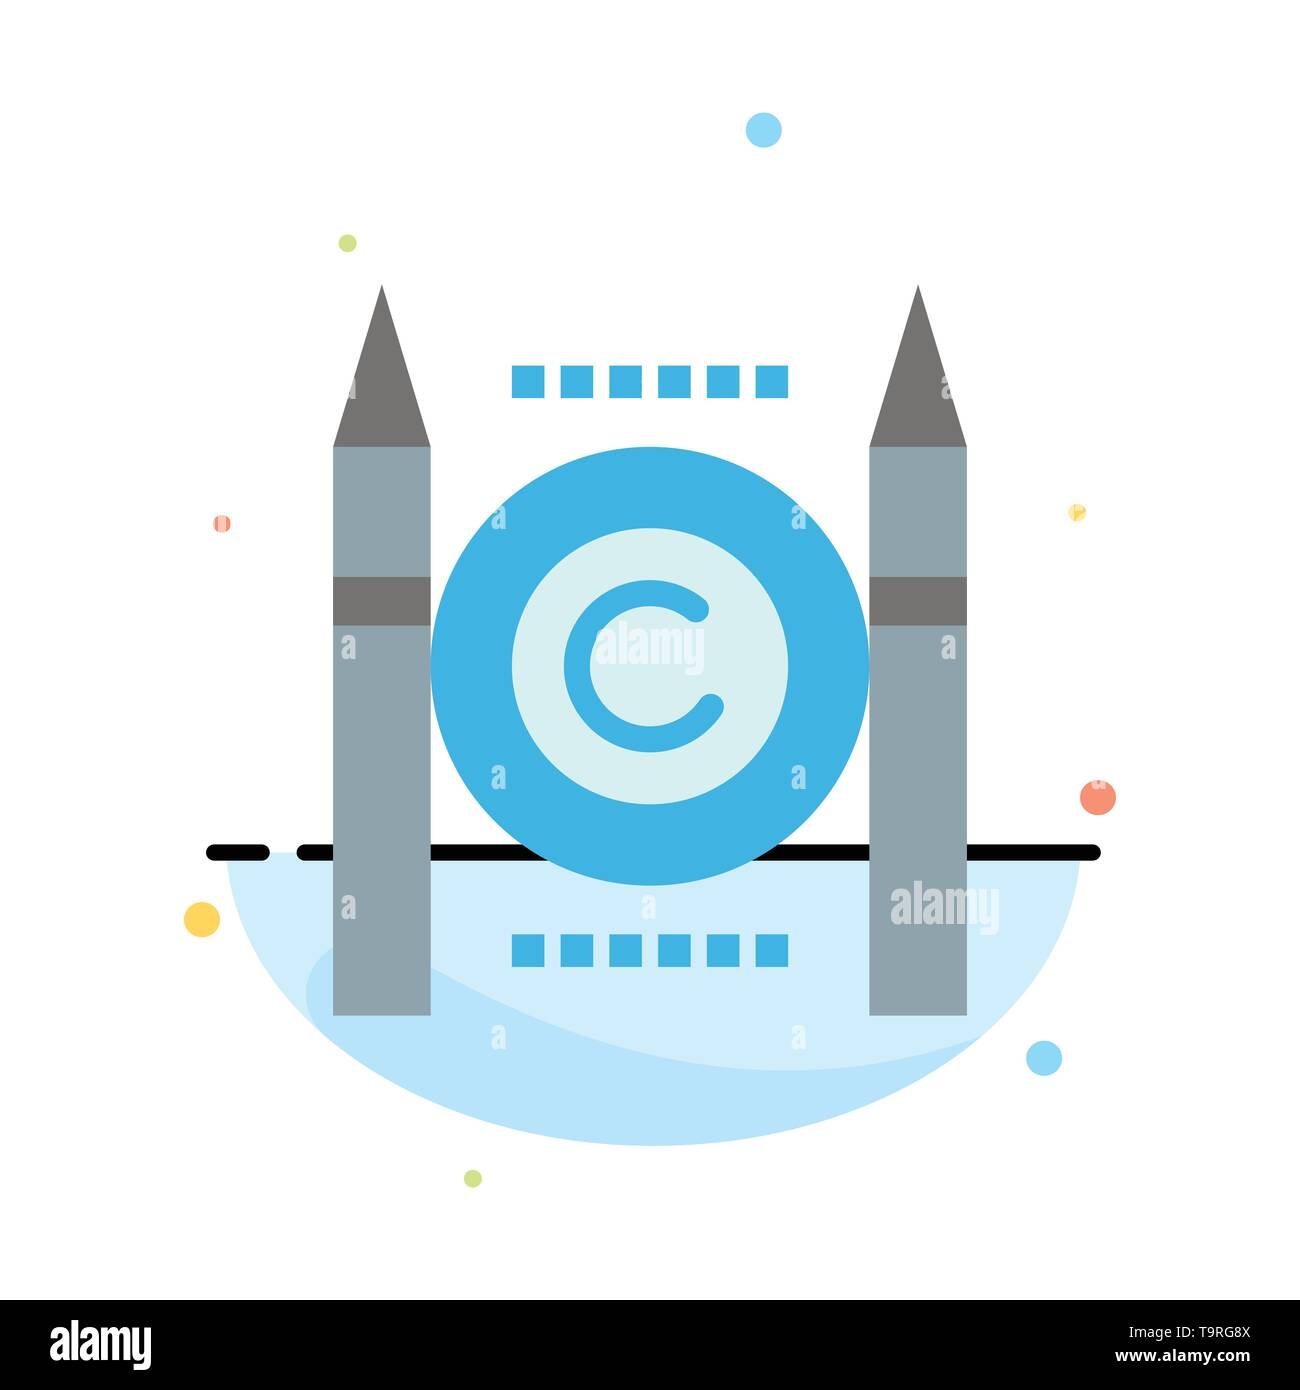 Business, Conflict, Copyright, Digital Abstract Flat Color Icon Template - Stock Image